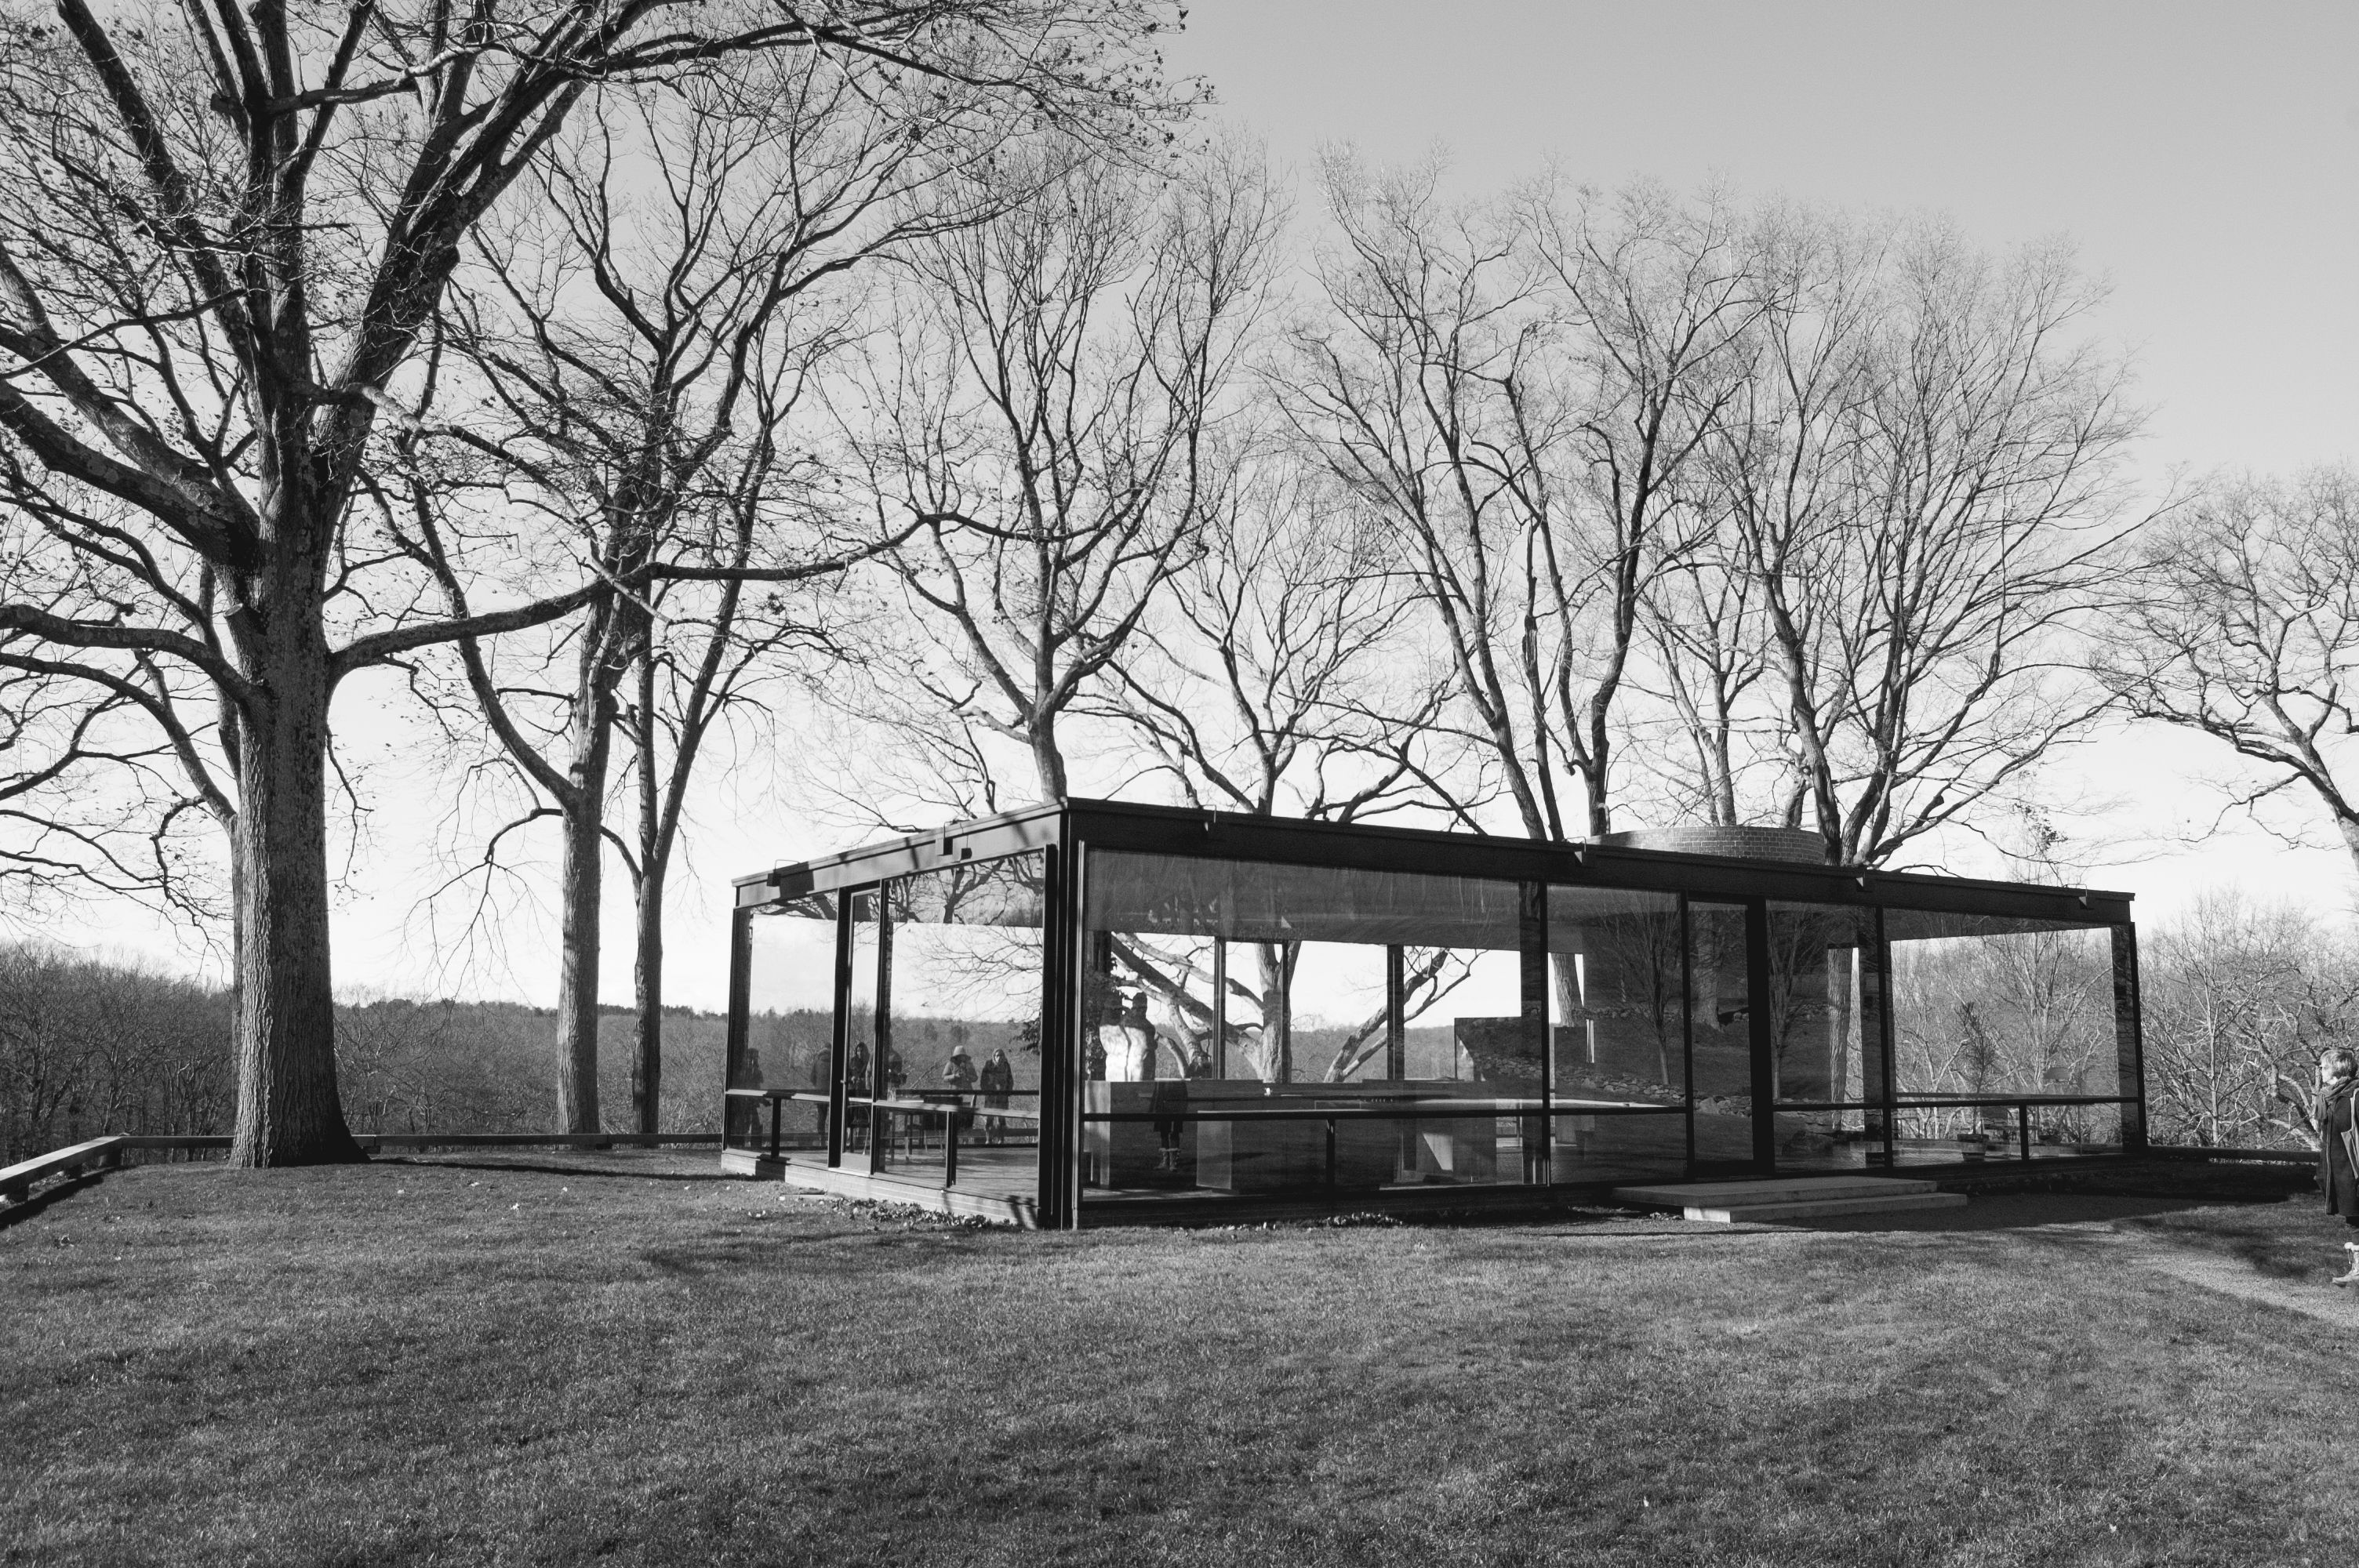 Philip Johnson Glass House events, follies, brick and glass: a visit to philip